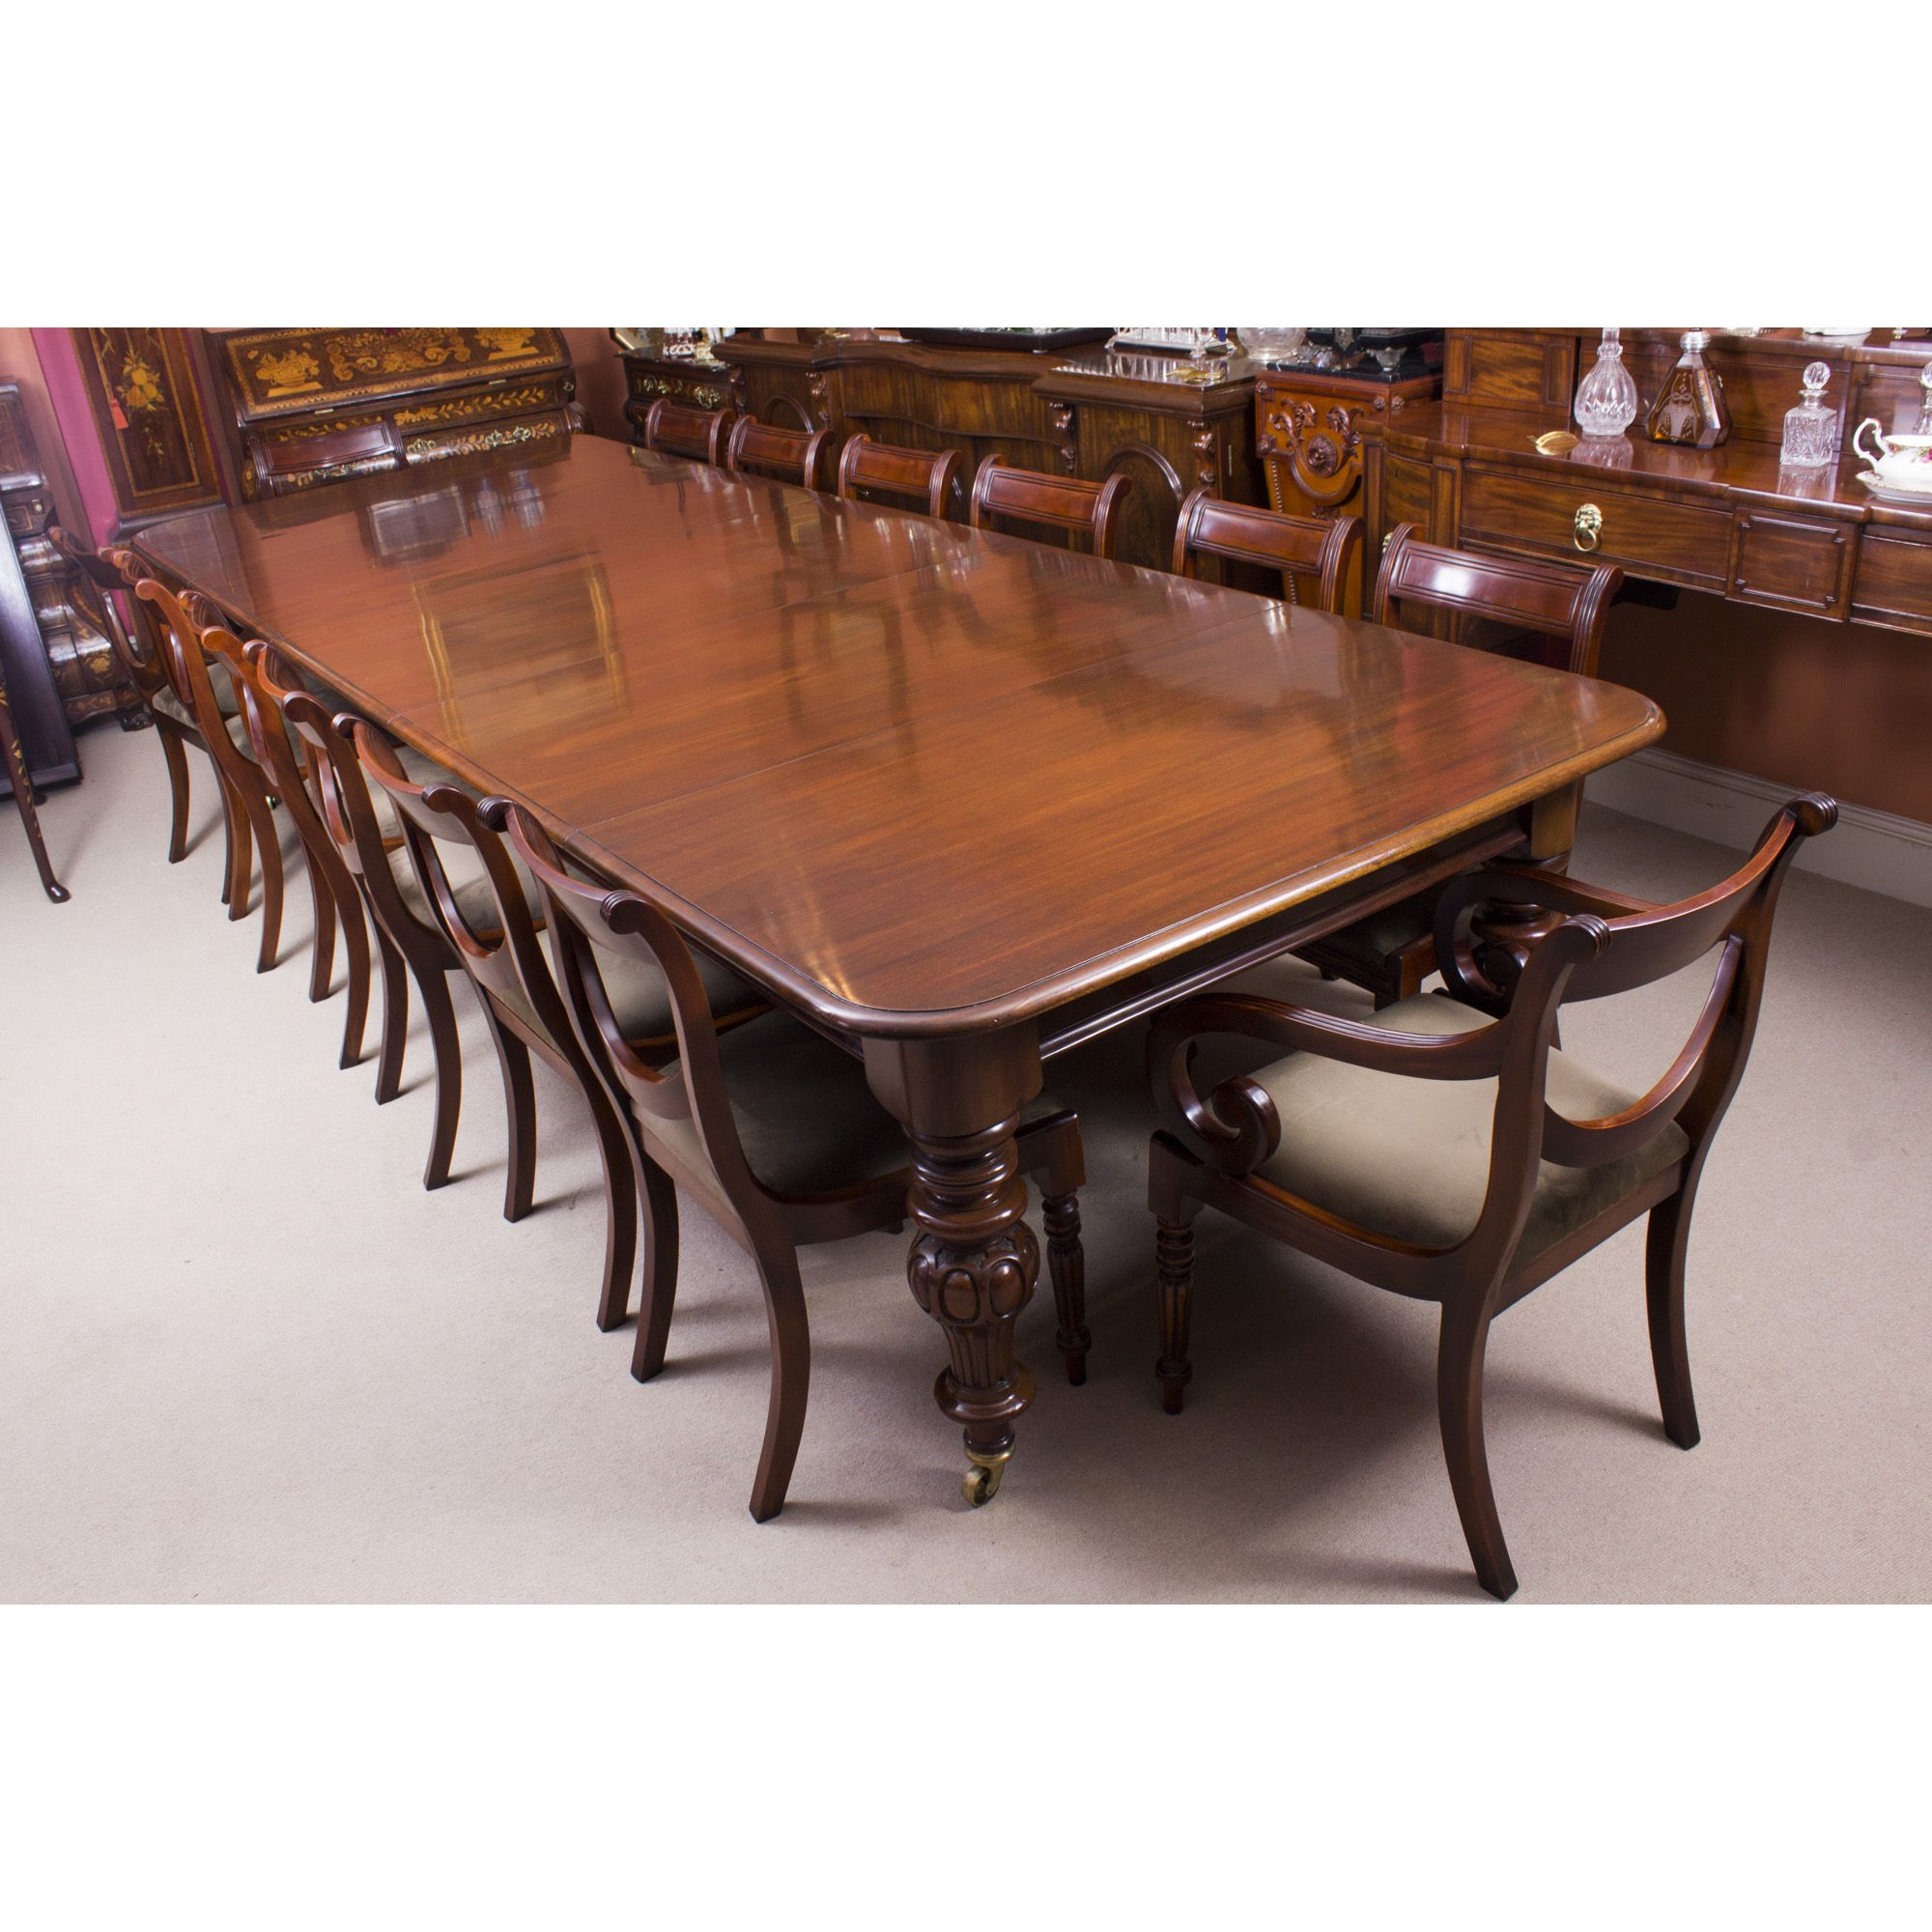 Antique victorian 12 ft flame mahogany dining table 14